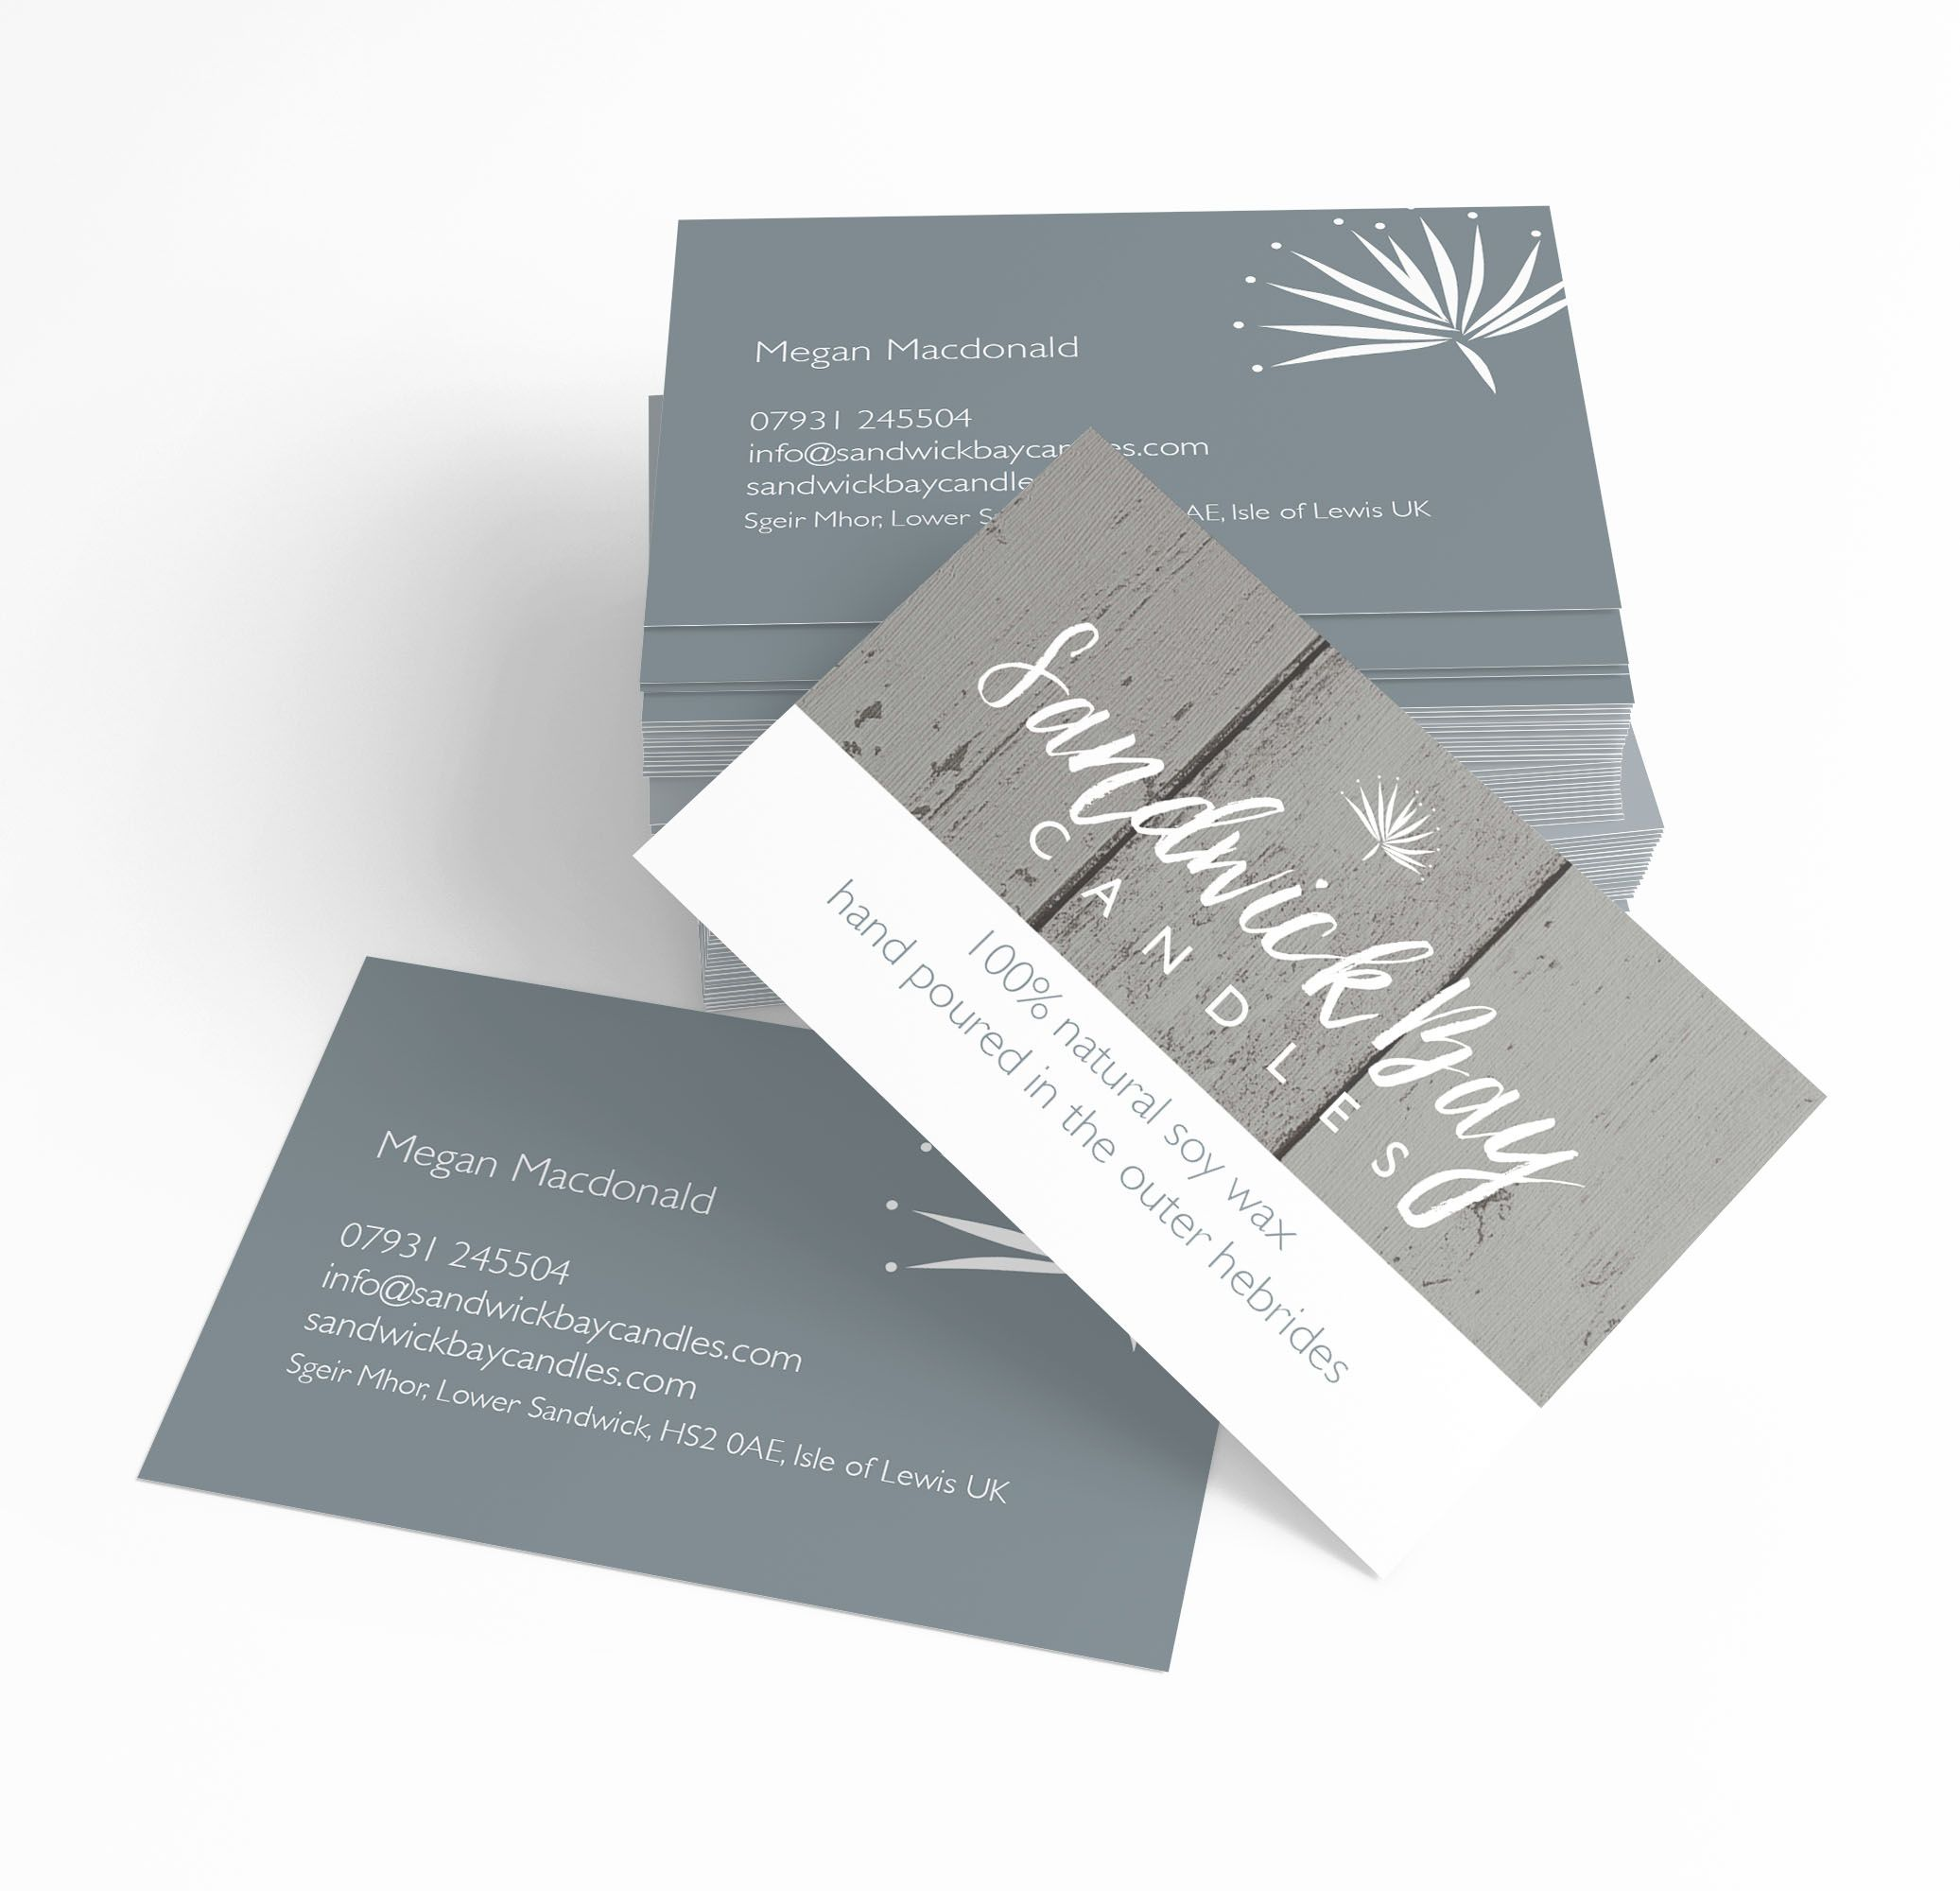 business card design for sandwick bay candles by ros o donnell